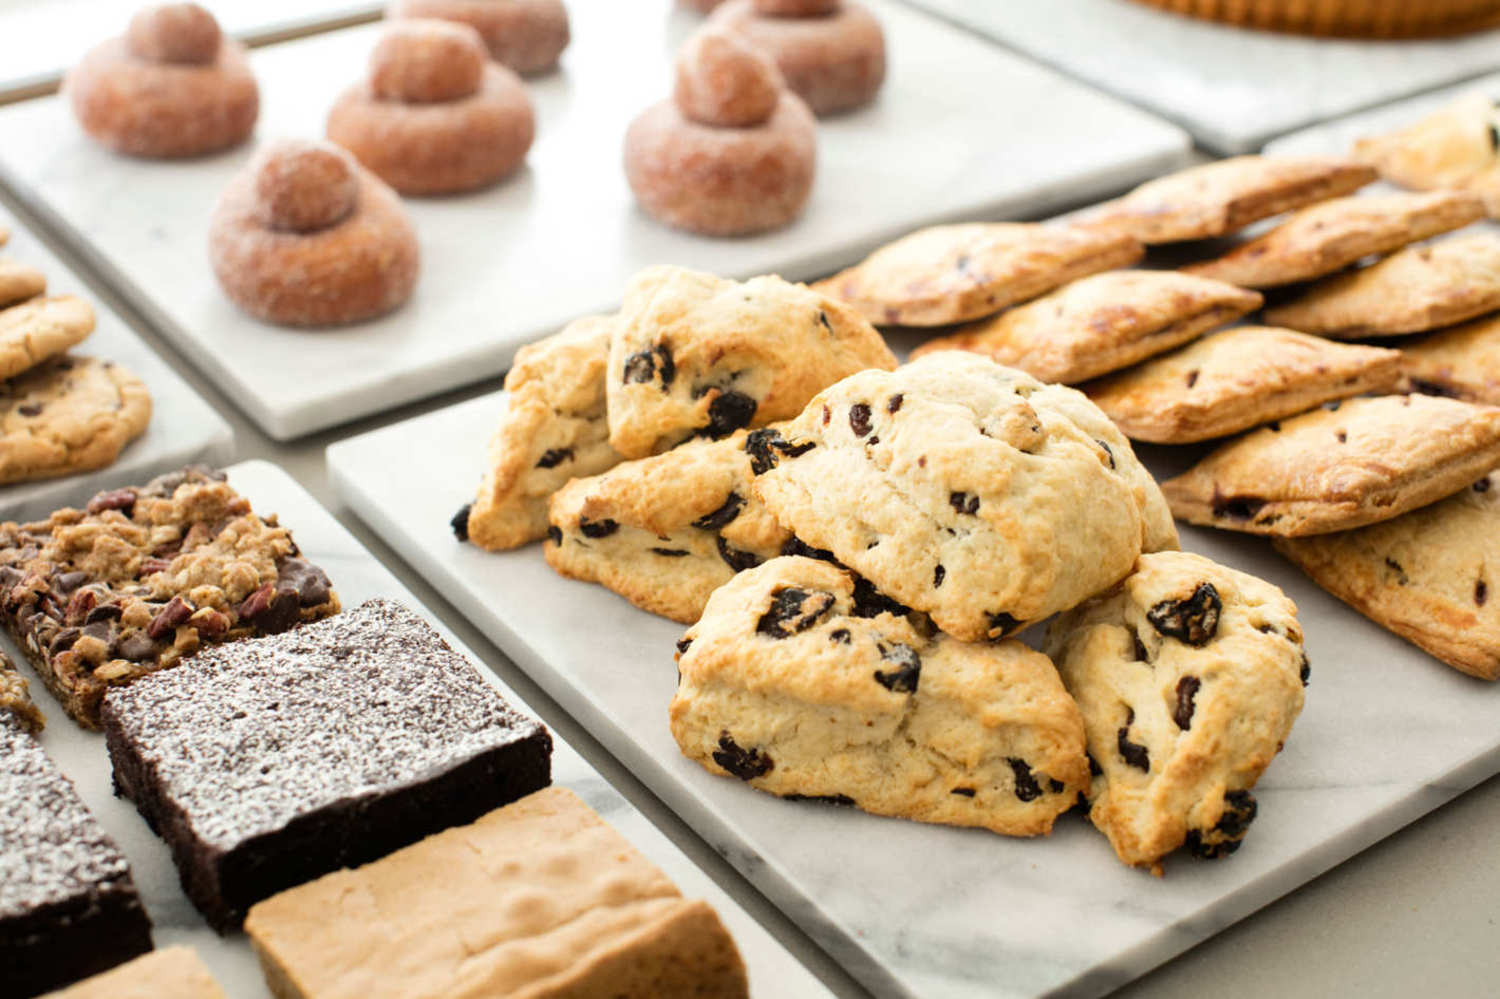 Bars, brownies, scones, doughnuts, and hand pies.